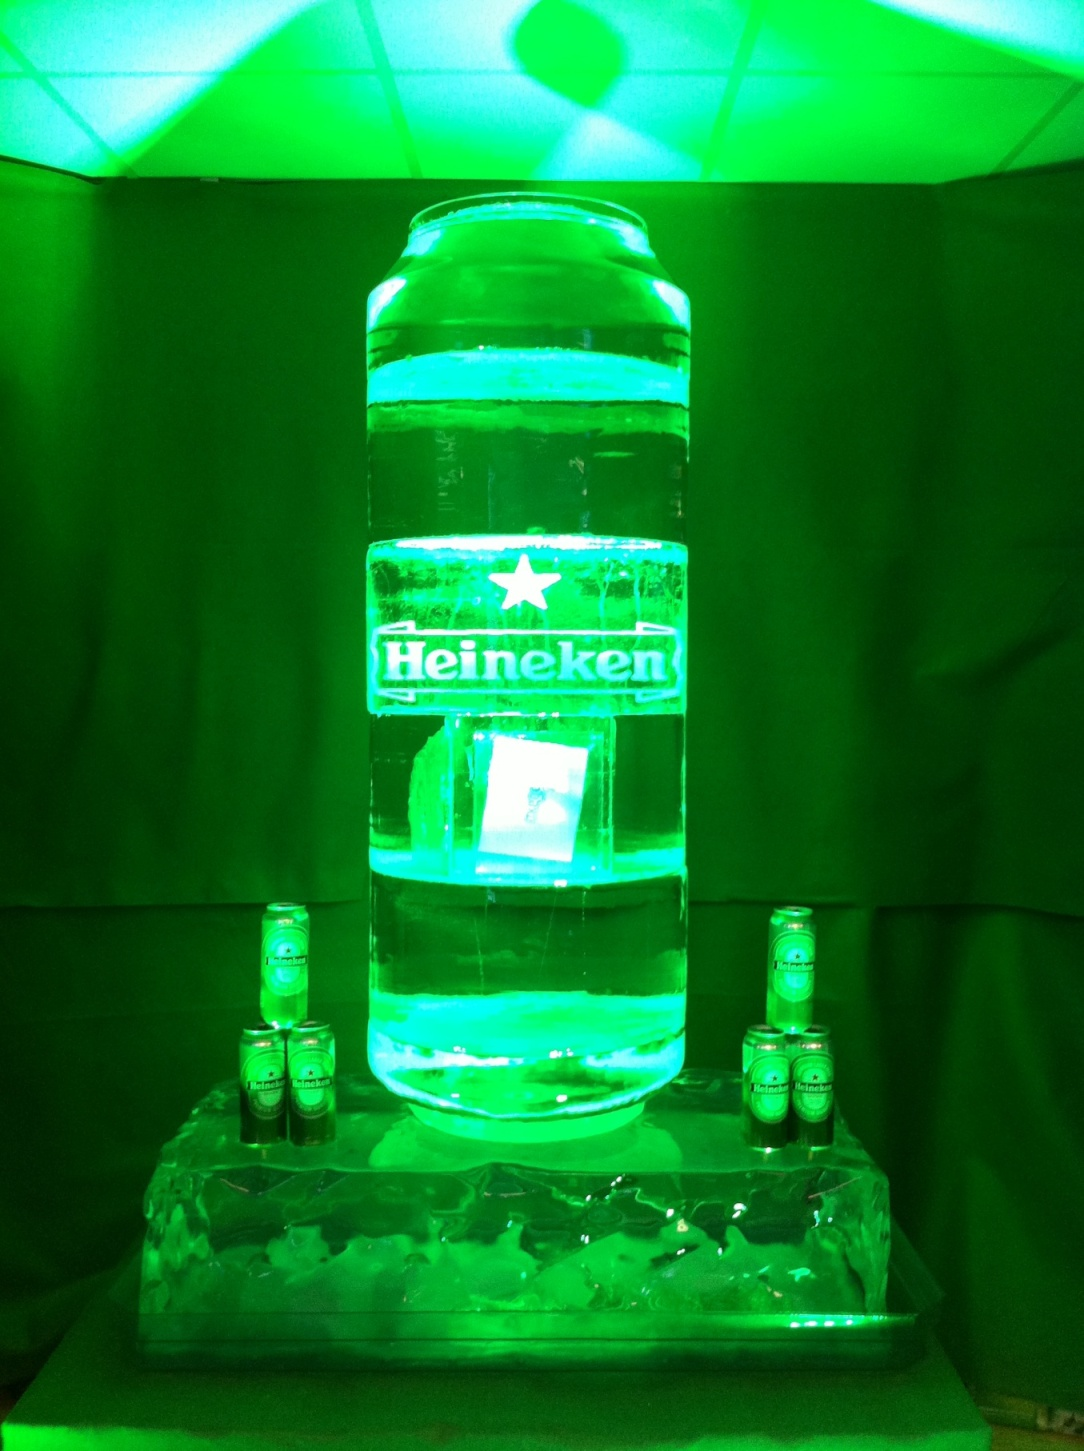 Heineken Can Replica - ice melt competition